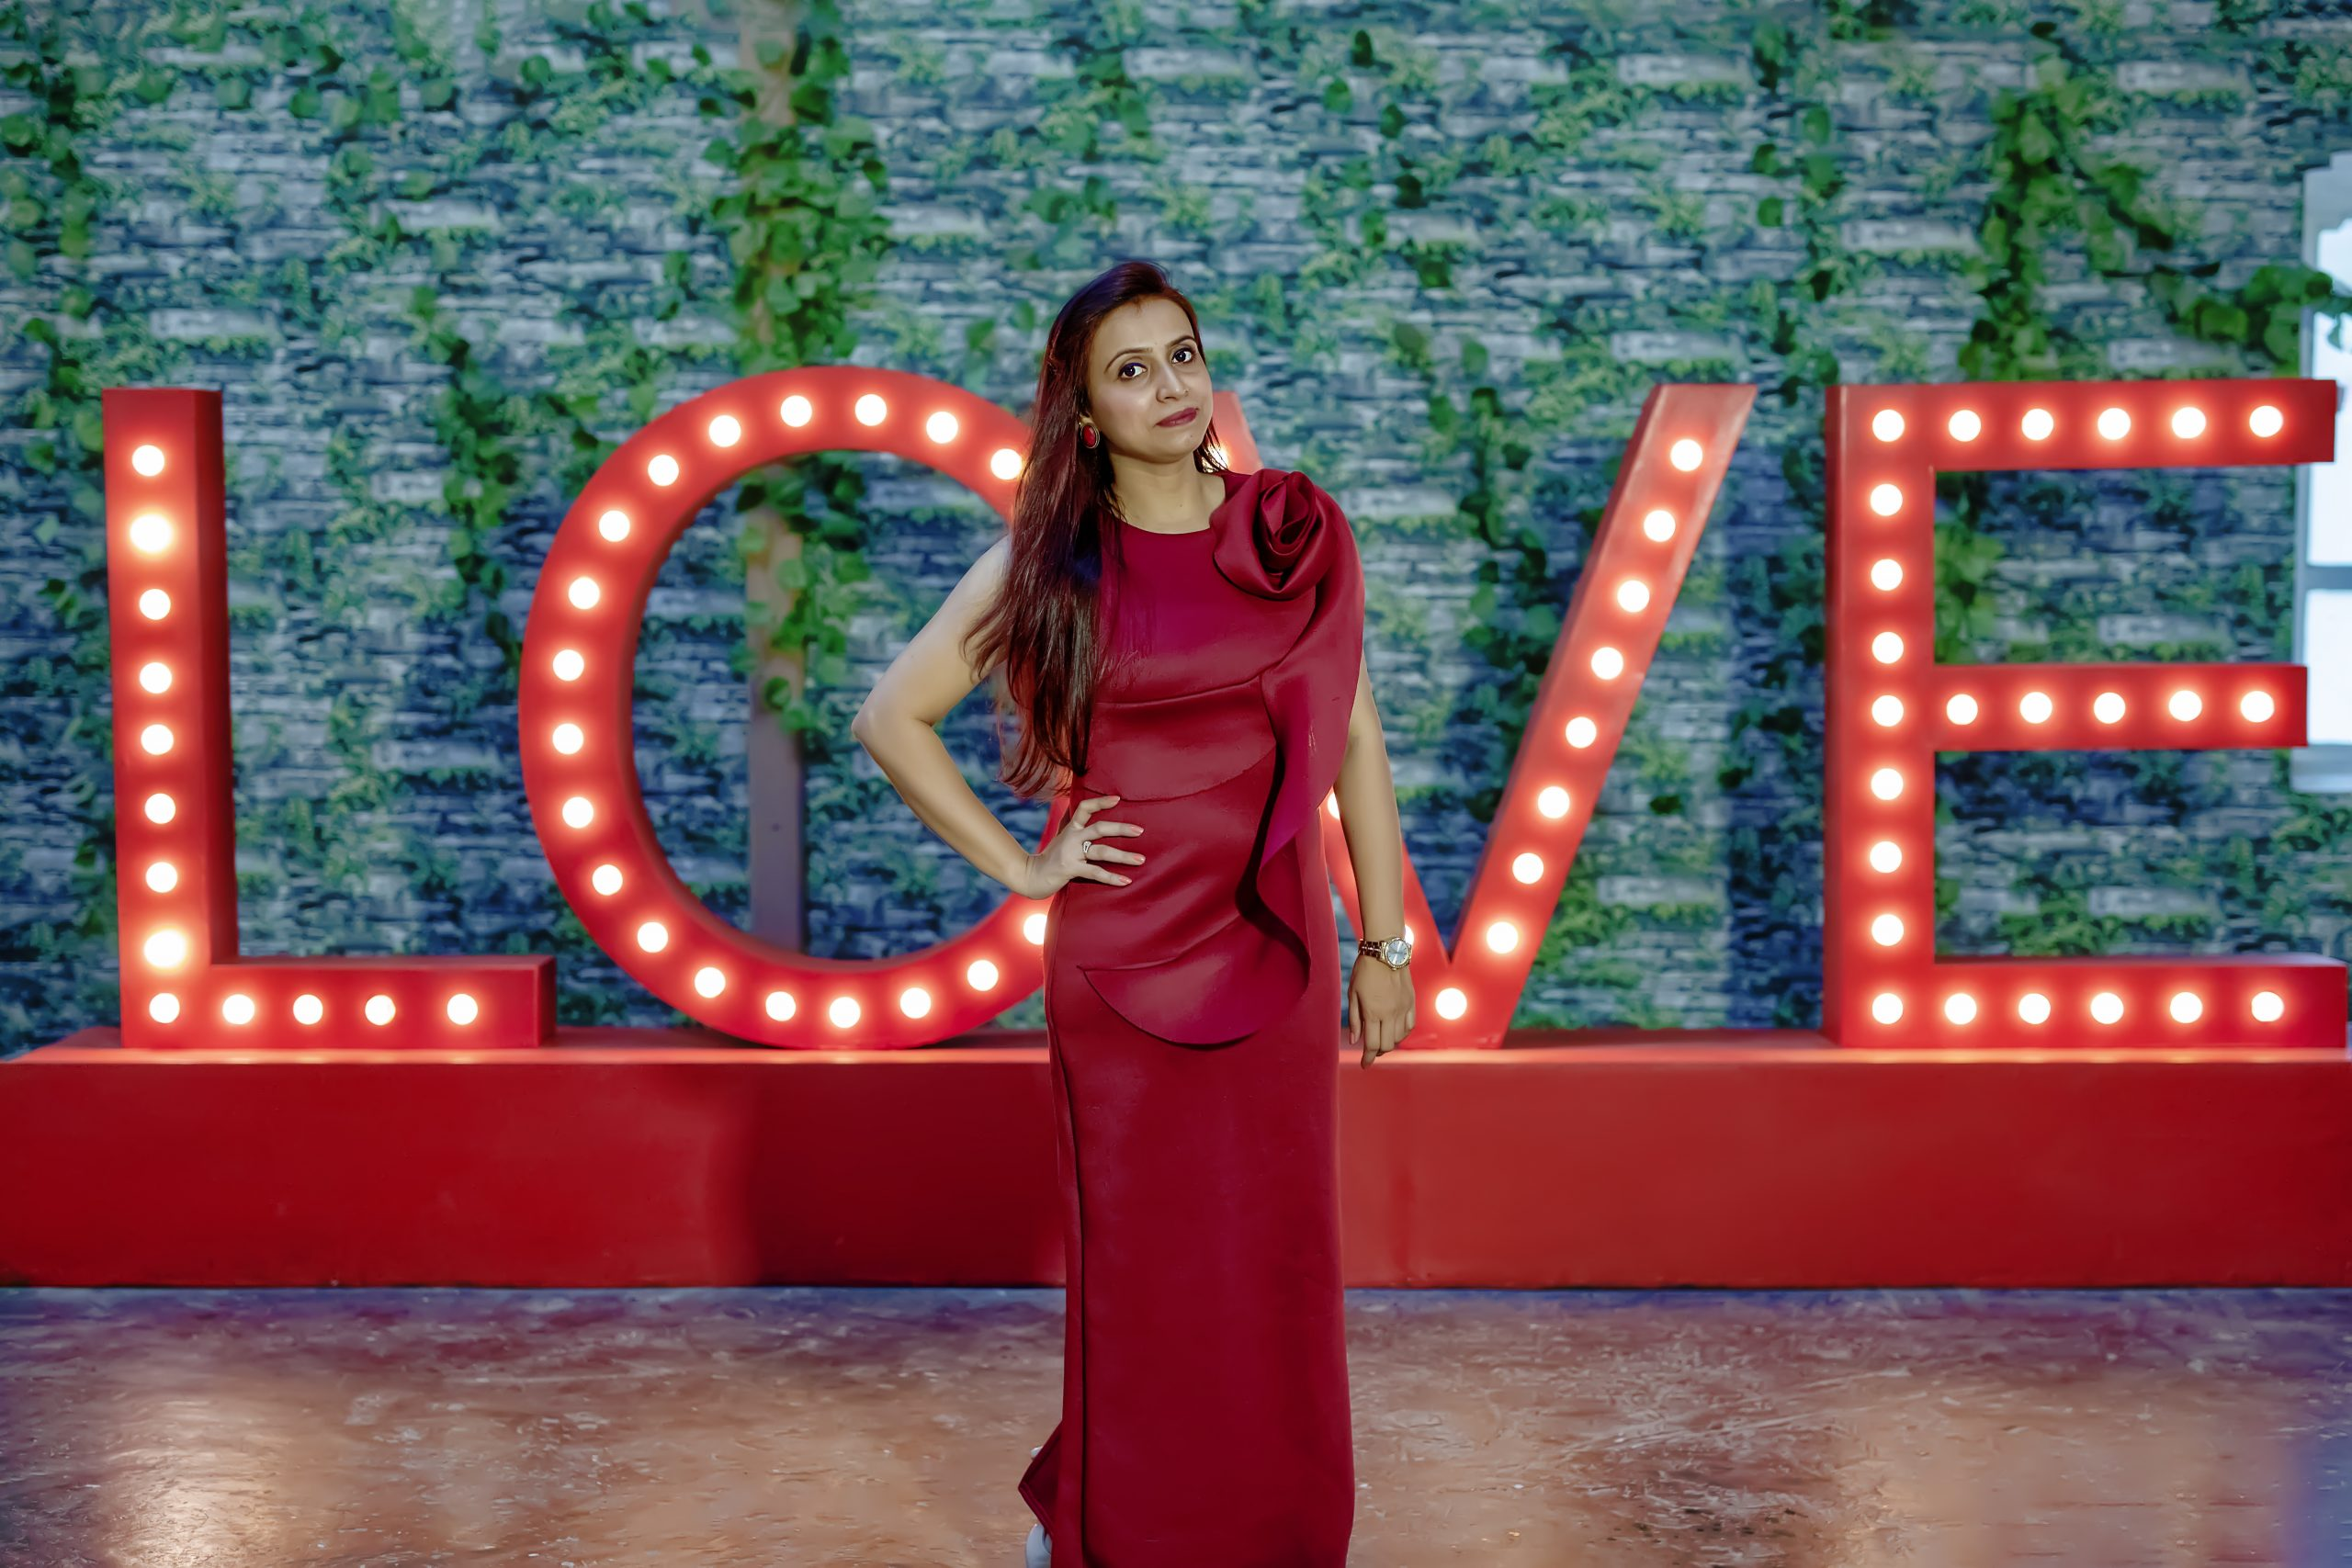 A lady posing in front of 'Love' sign